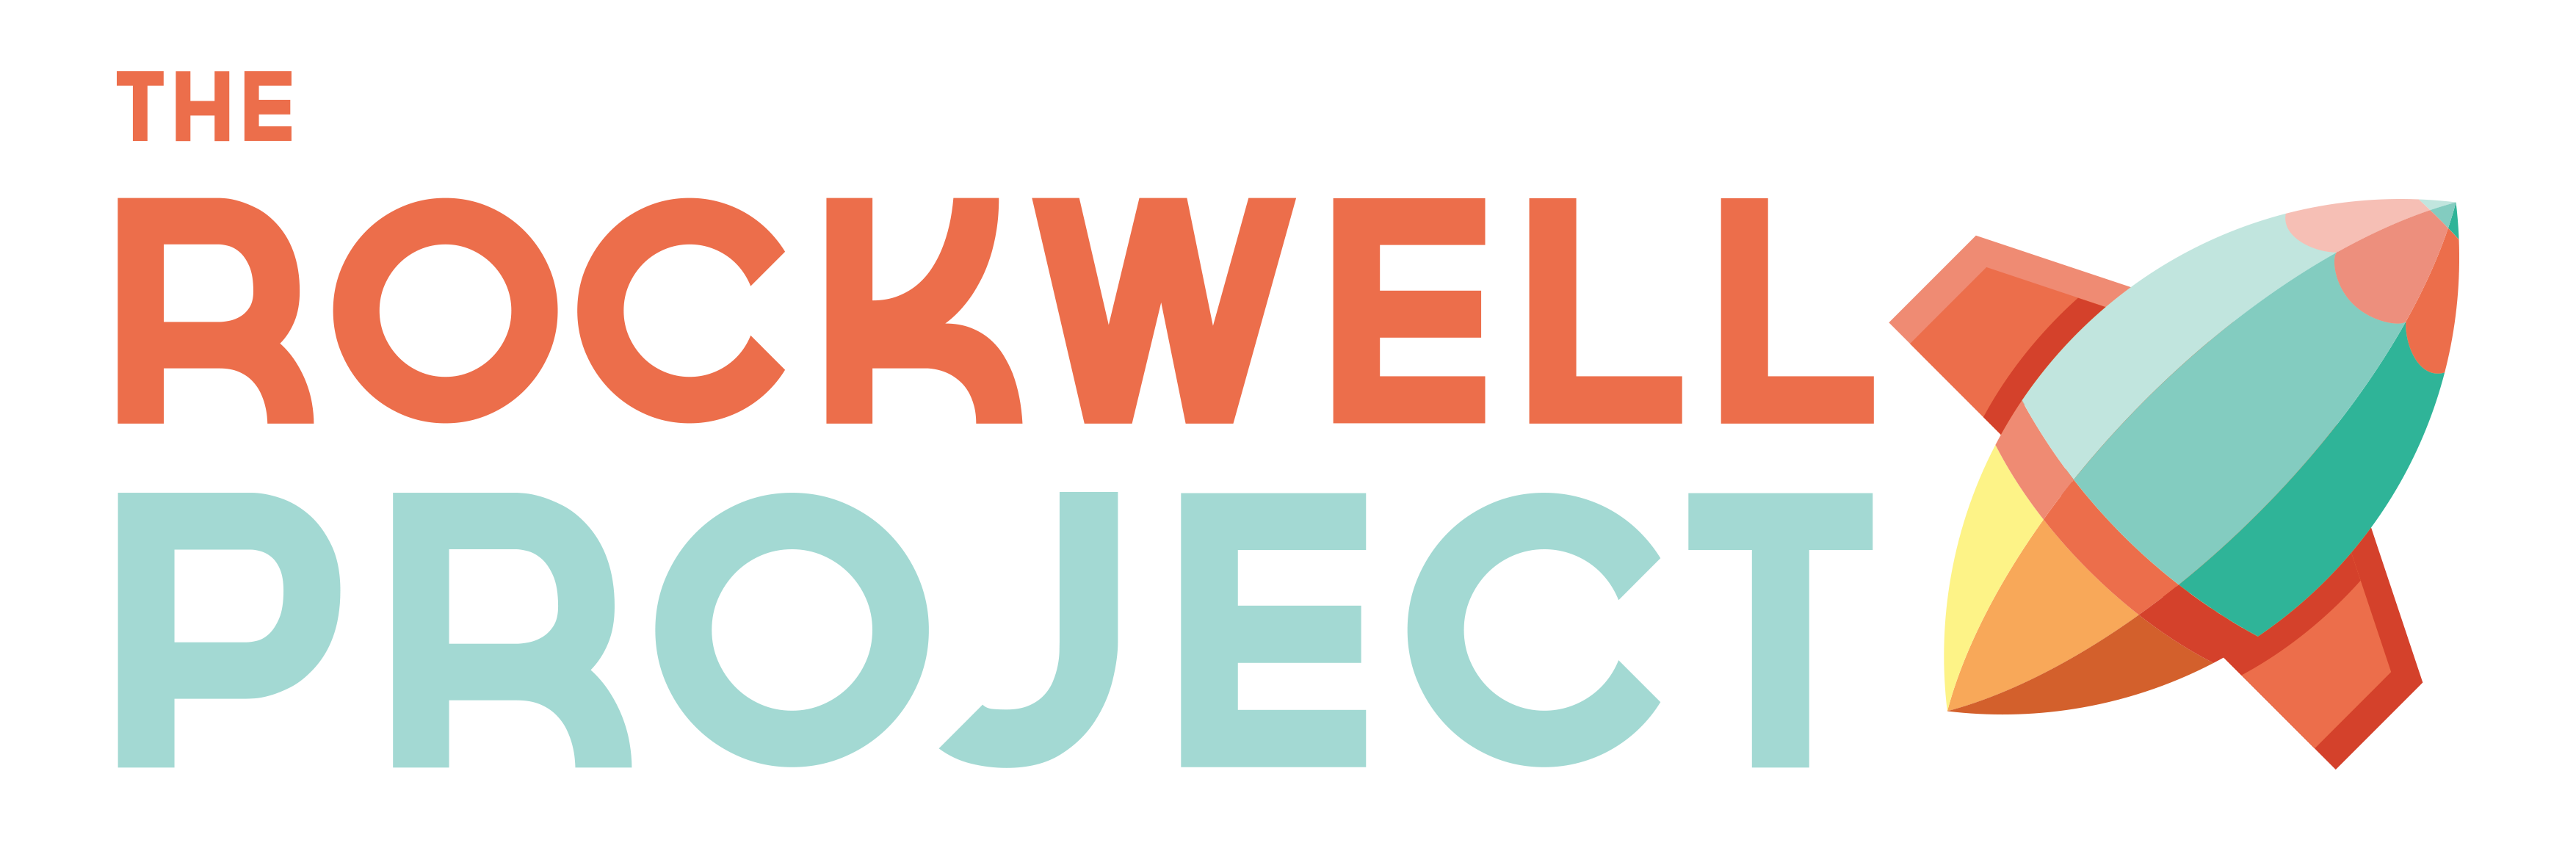 The Rockwell Project